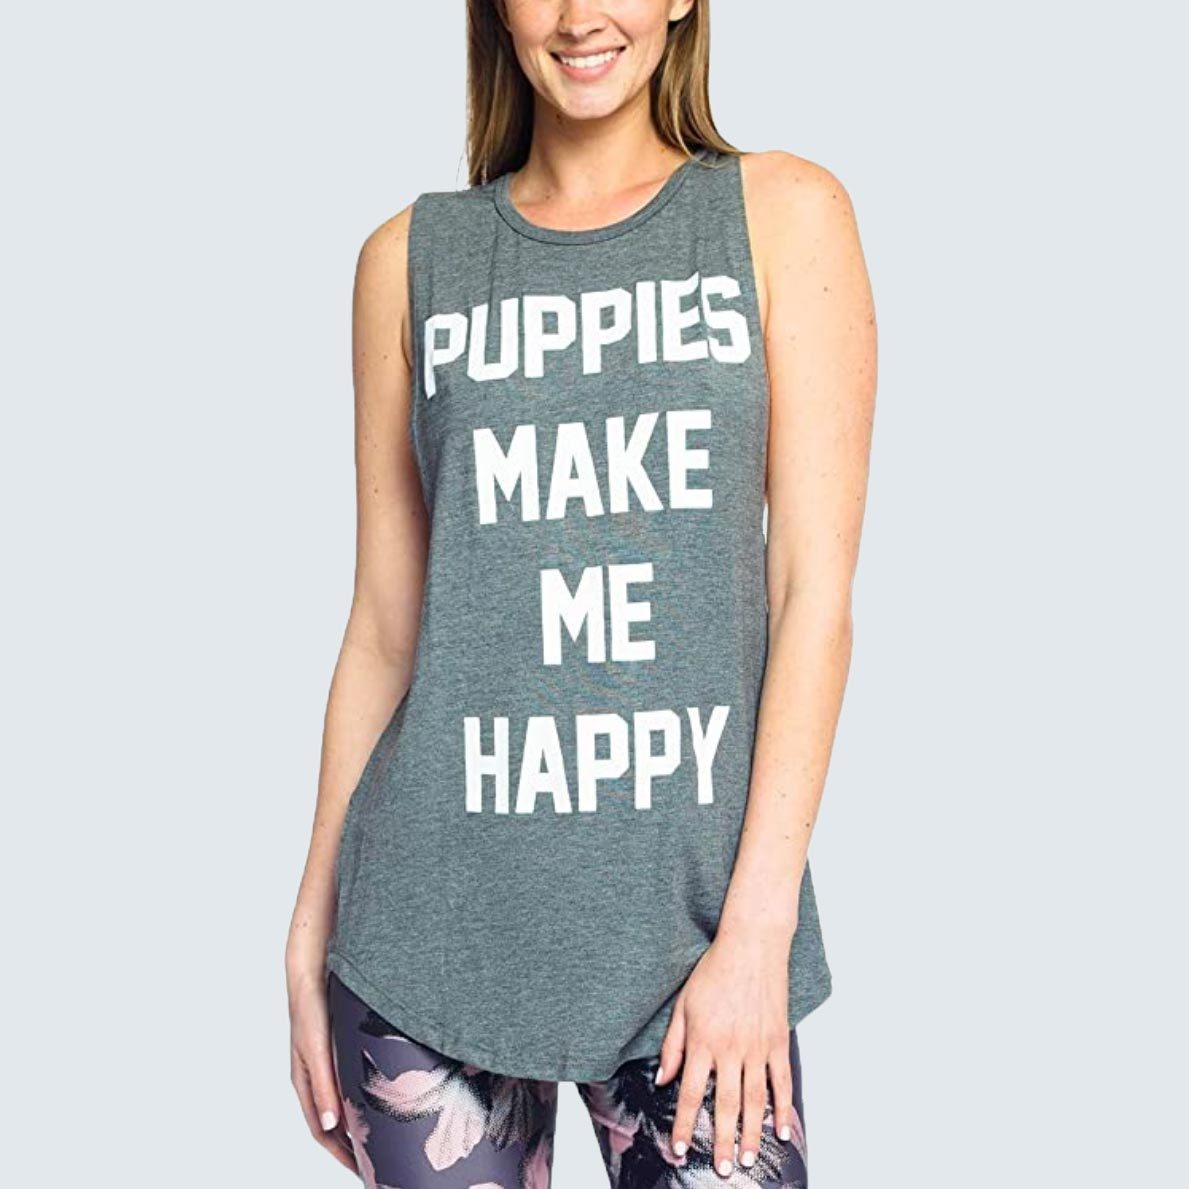 Puppies Make Me Happy T-Shirt